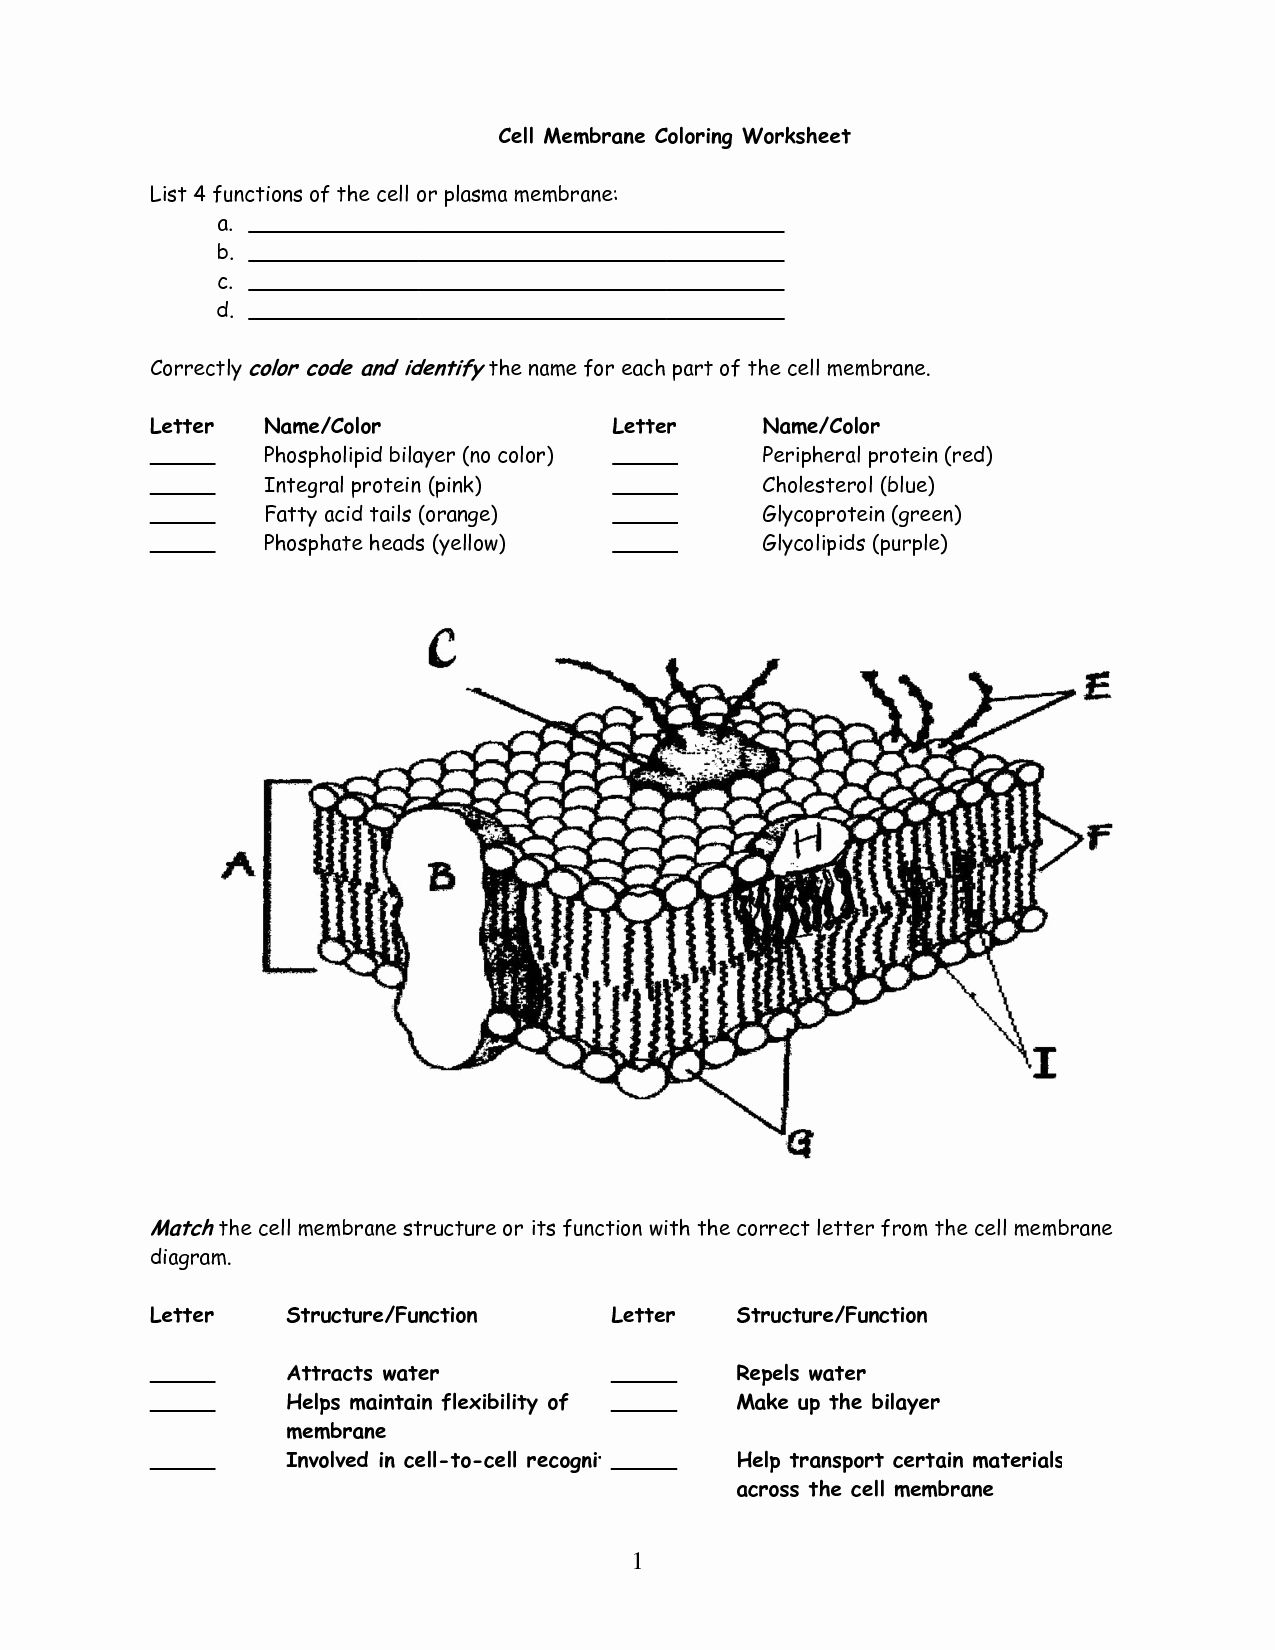 Cell Membrane Images Worksheet Answers Fresh 19 Best Of Printable Long Division With Rem In 2020 Cell Membrane Coloring Worksheet Cell Membrane Cell Membrane Structure